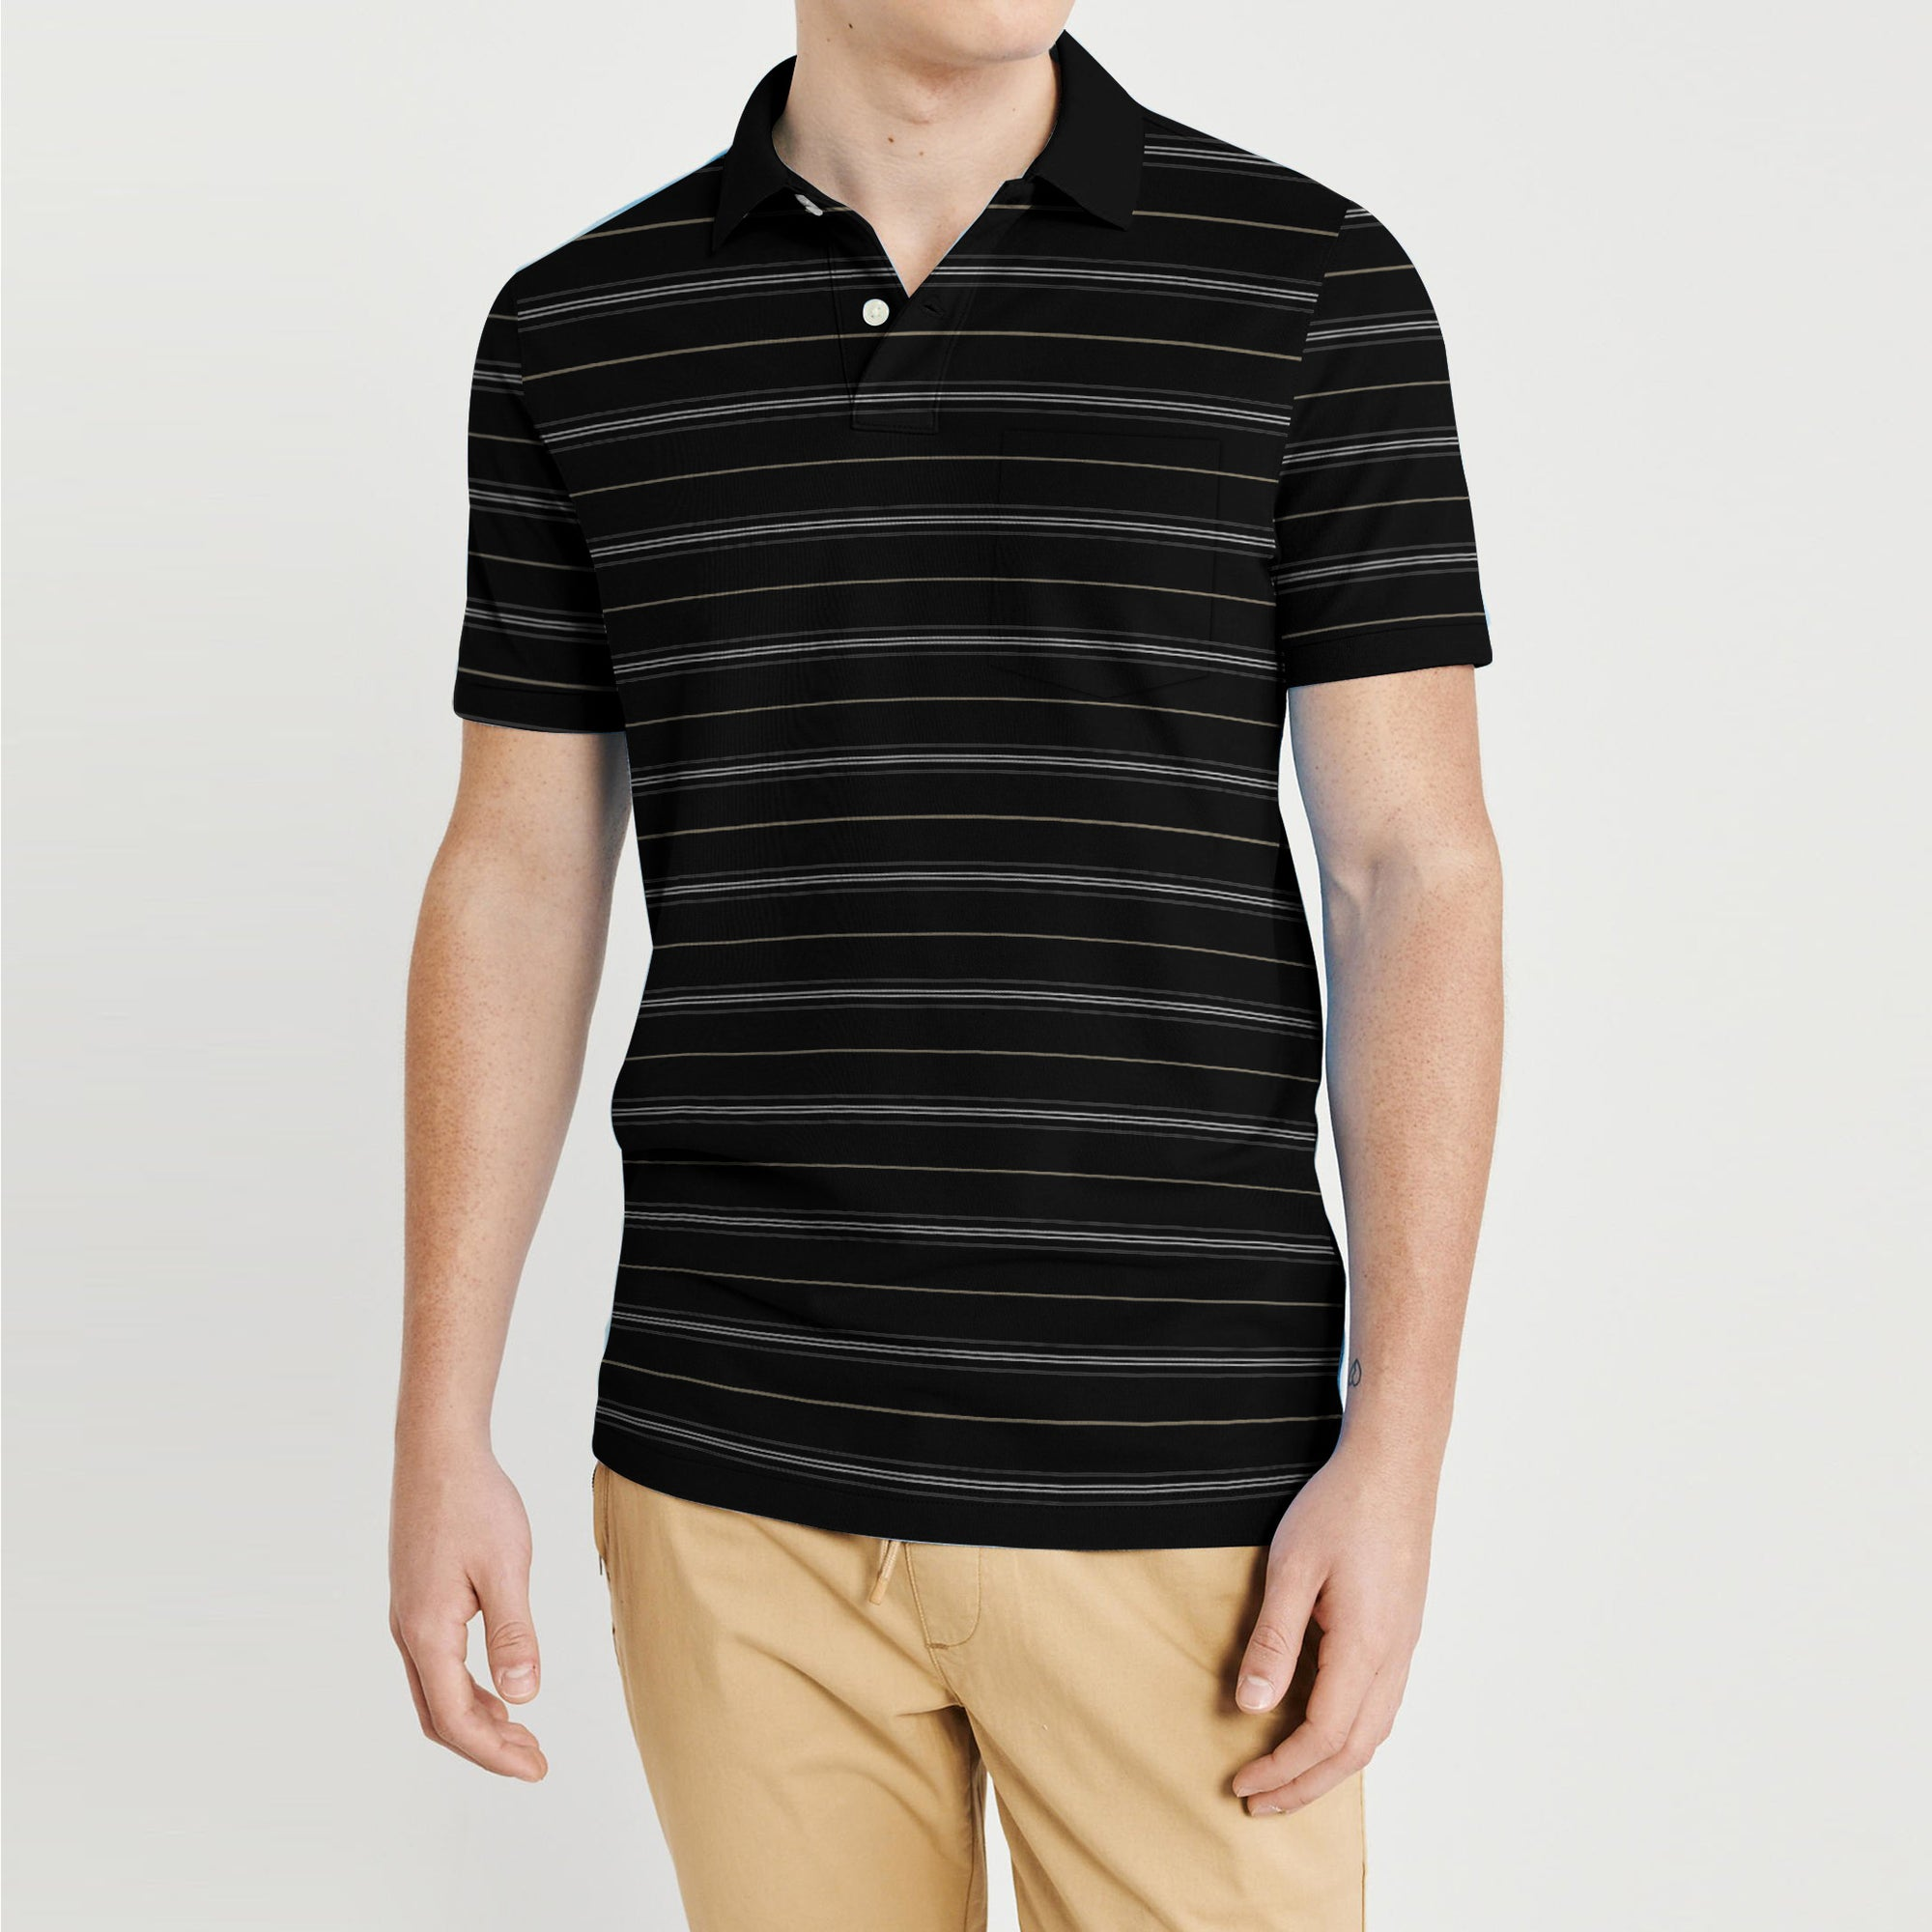 Covington Short Sleeve Single Jersey Polo Shirt For Men-Black with Stripe-BE8422